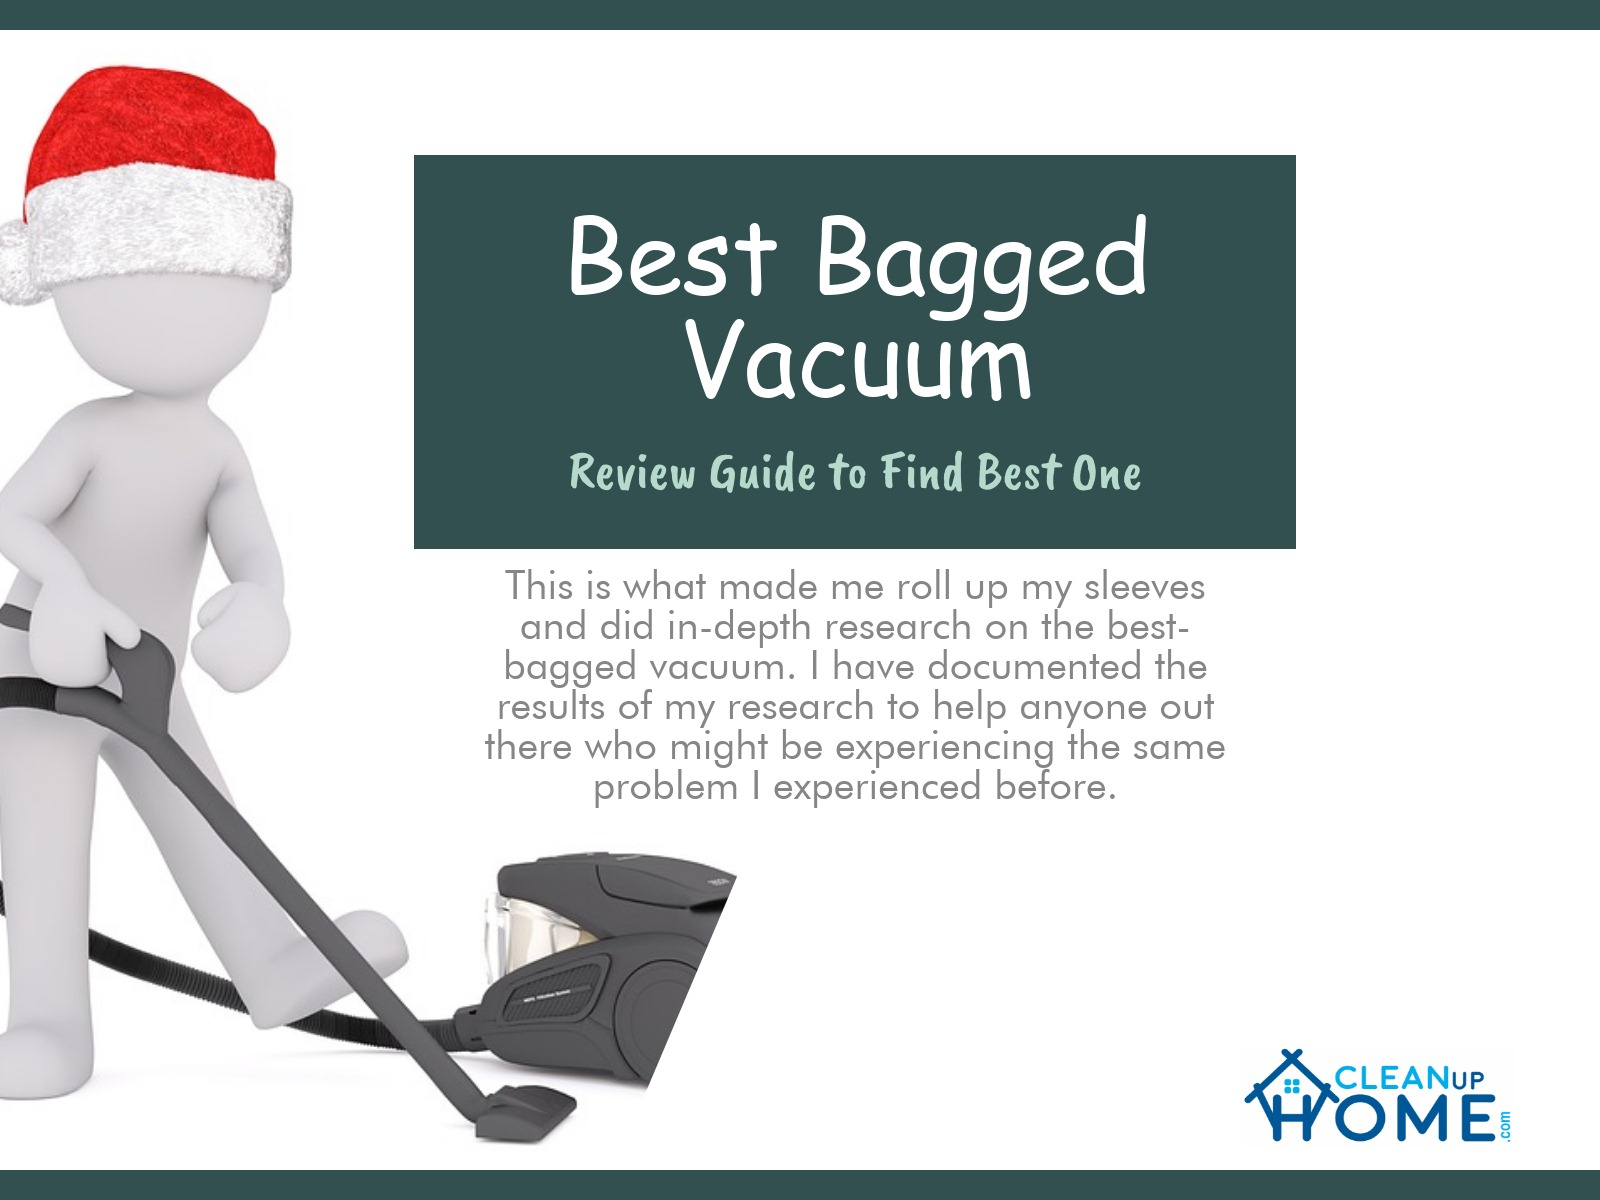 Best Bagged Vacuum Top 5 Review Guide To Find One Clean Up Home